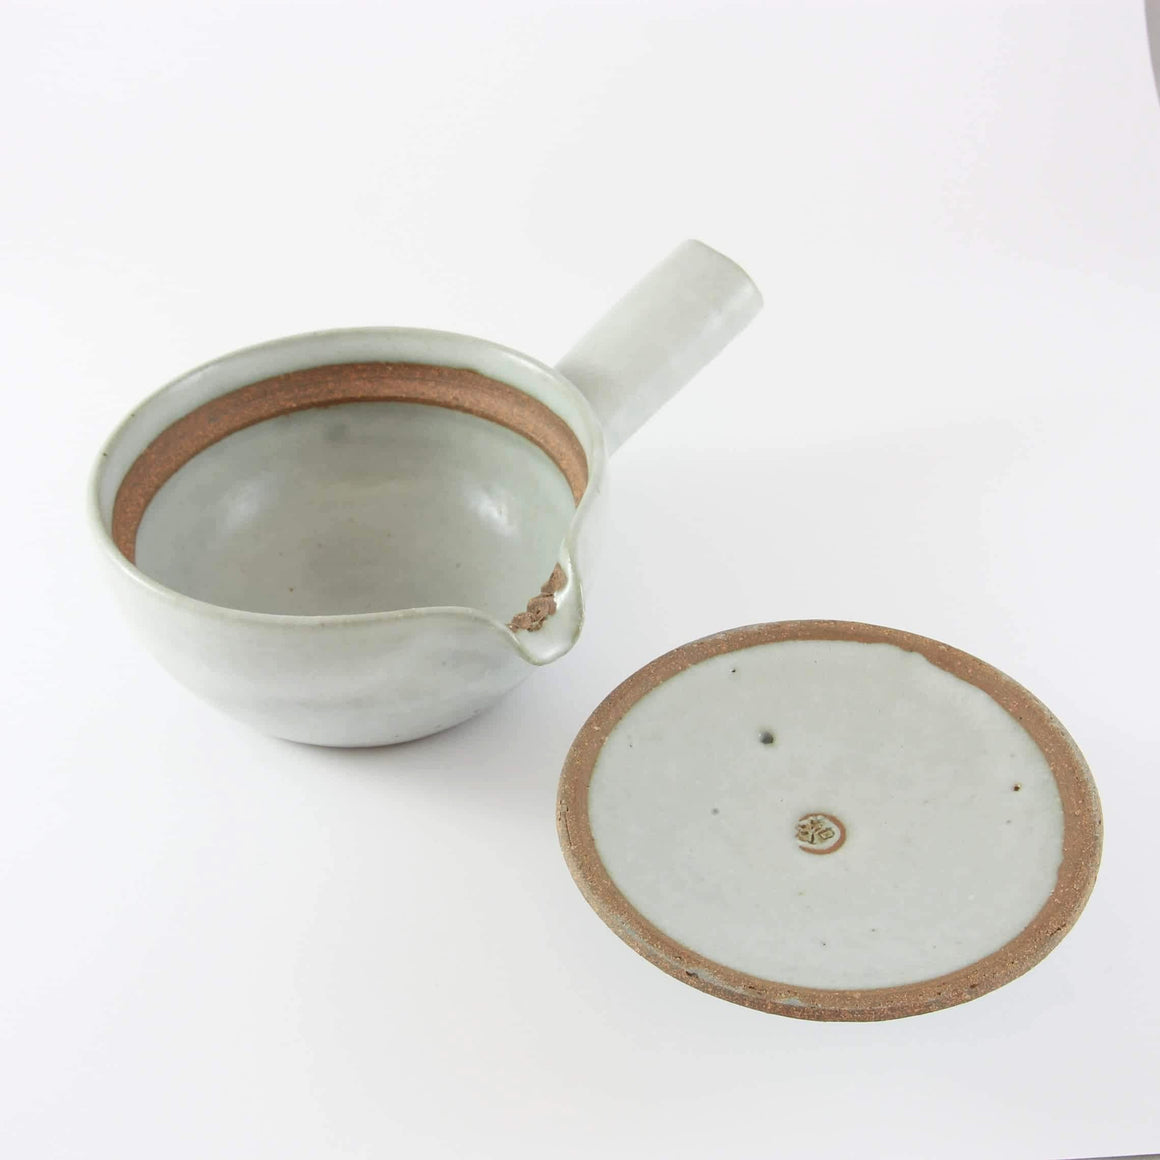 HAND-CRAFTED LIGHT-GREY KYUSHU TEAPOT (300ML) FROM TEA REPERTOIRE